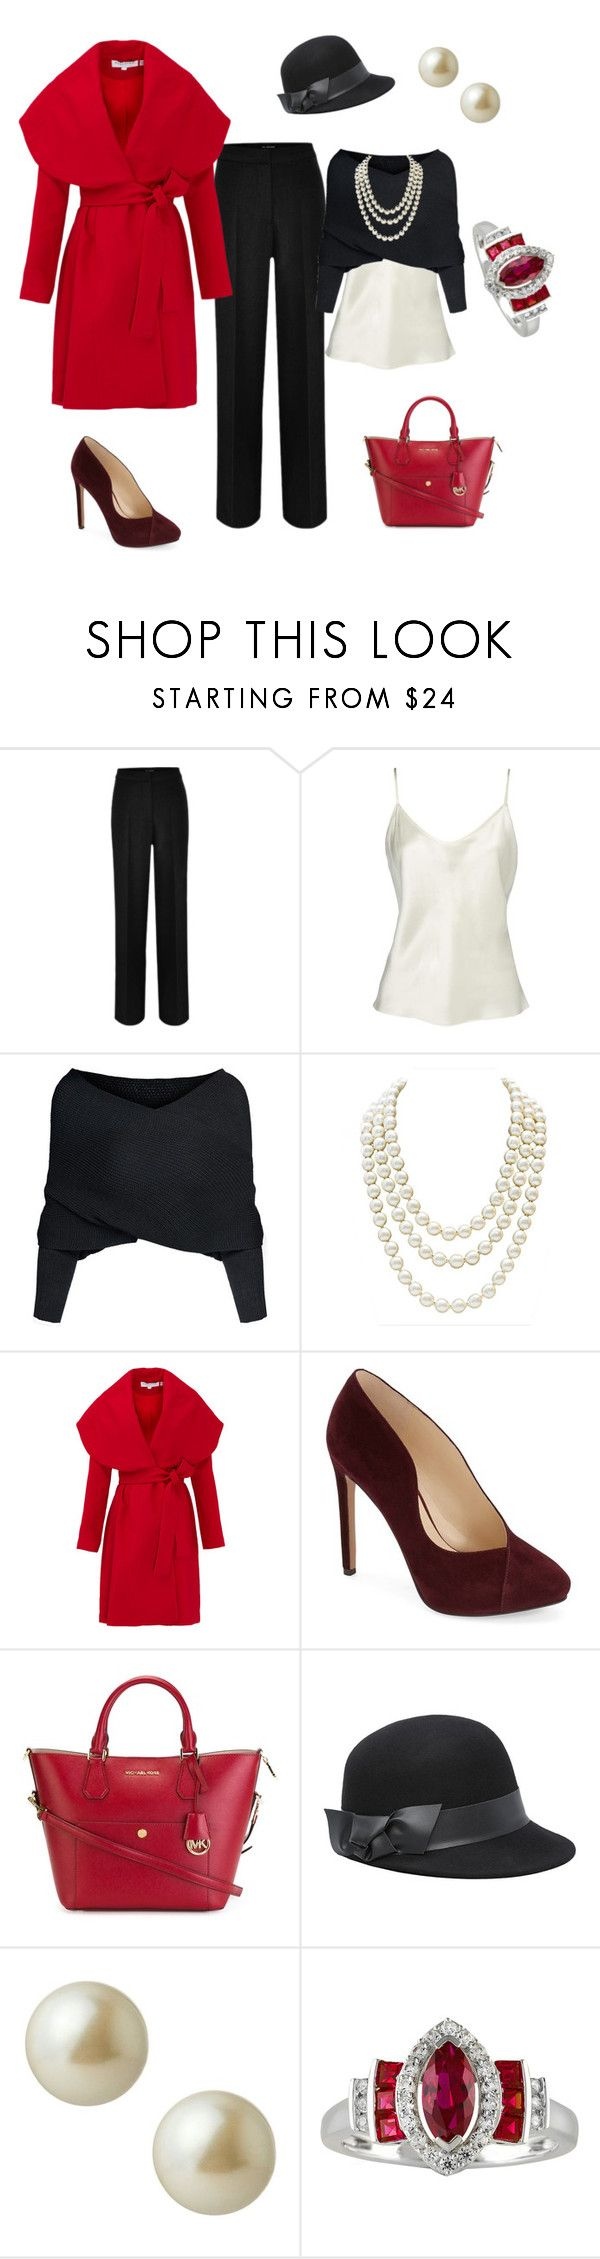 """Xmas styling ideas $1"" by antiadamo on Polyvore featuring Chanel, Keepsake the Label, Nine West, MICHAEL Michael Kors, Bebe and Carolee"